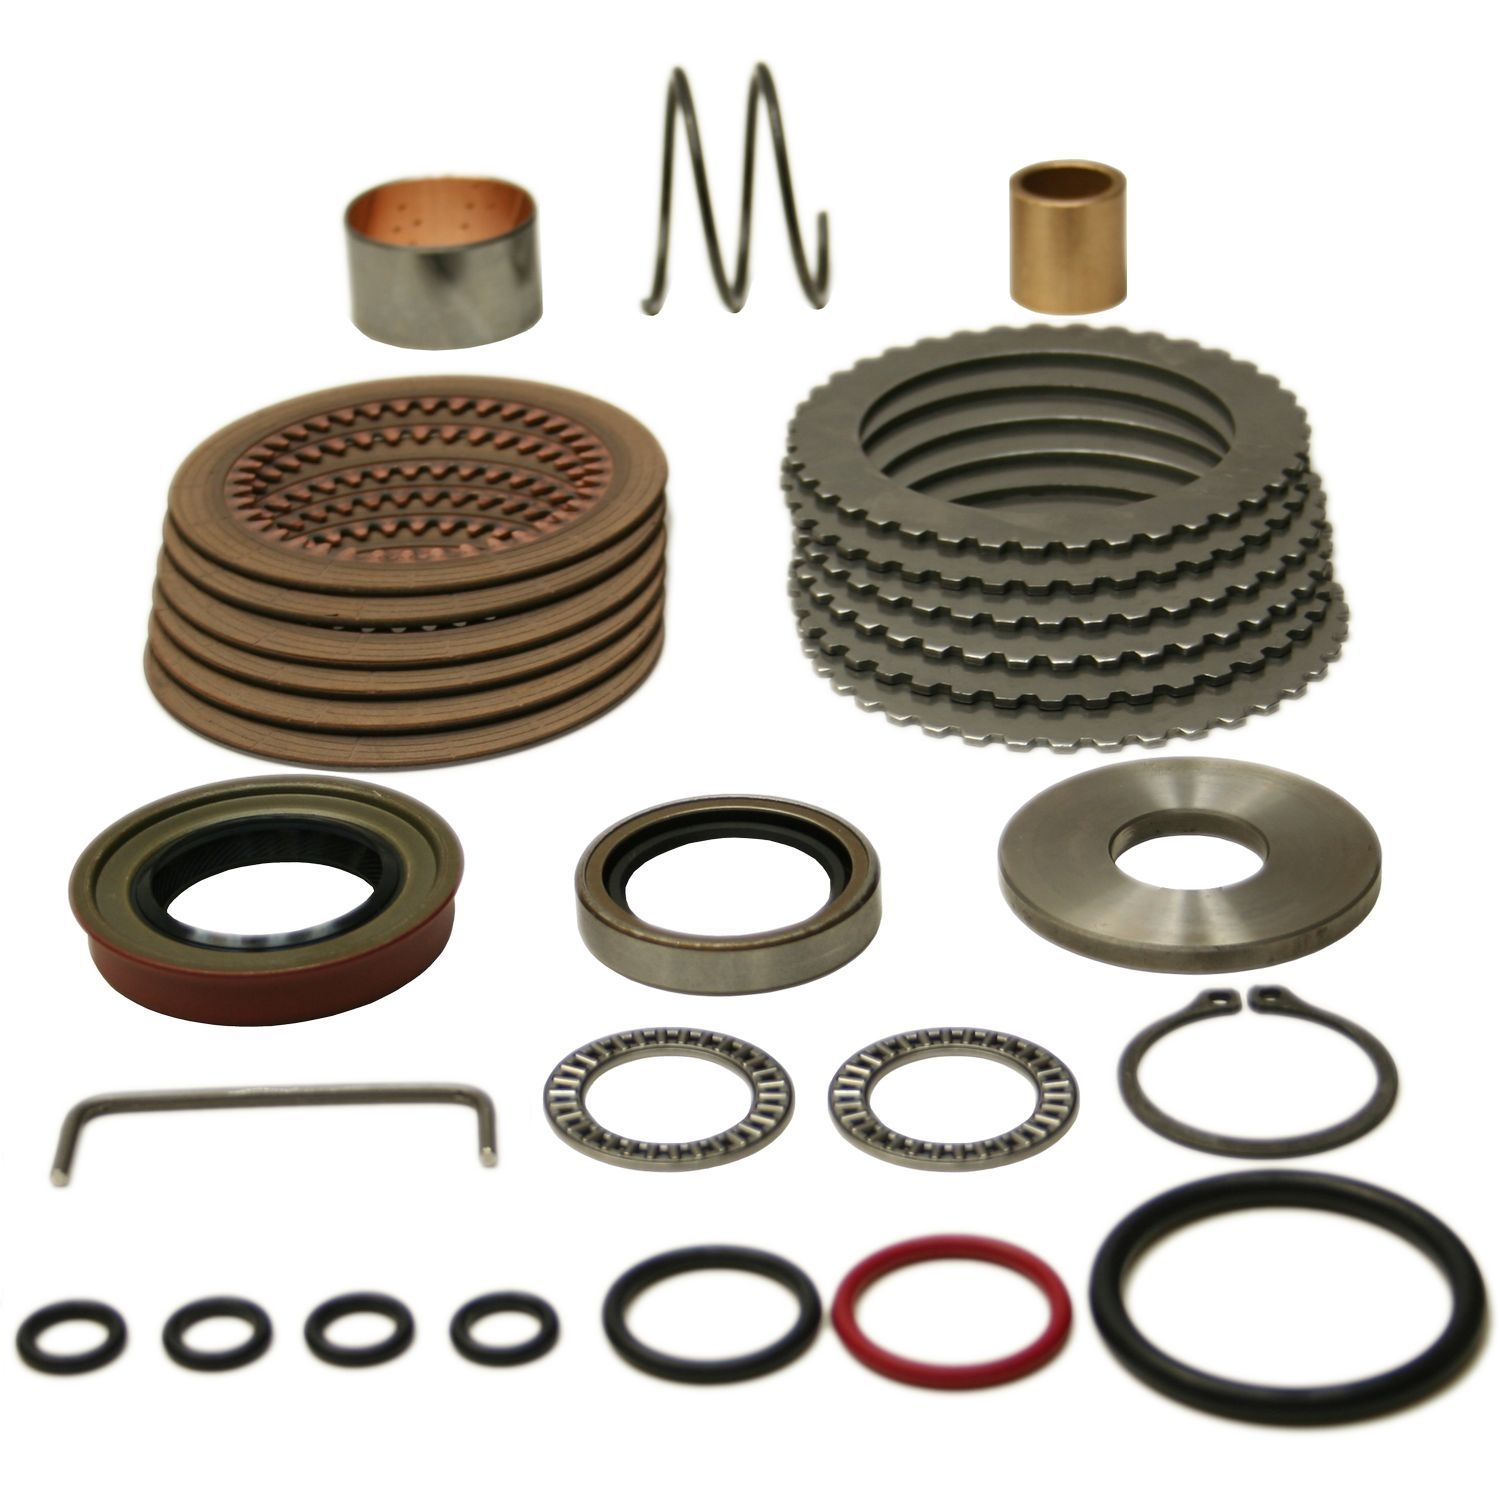 Transmission Rebuild Kits & Components